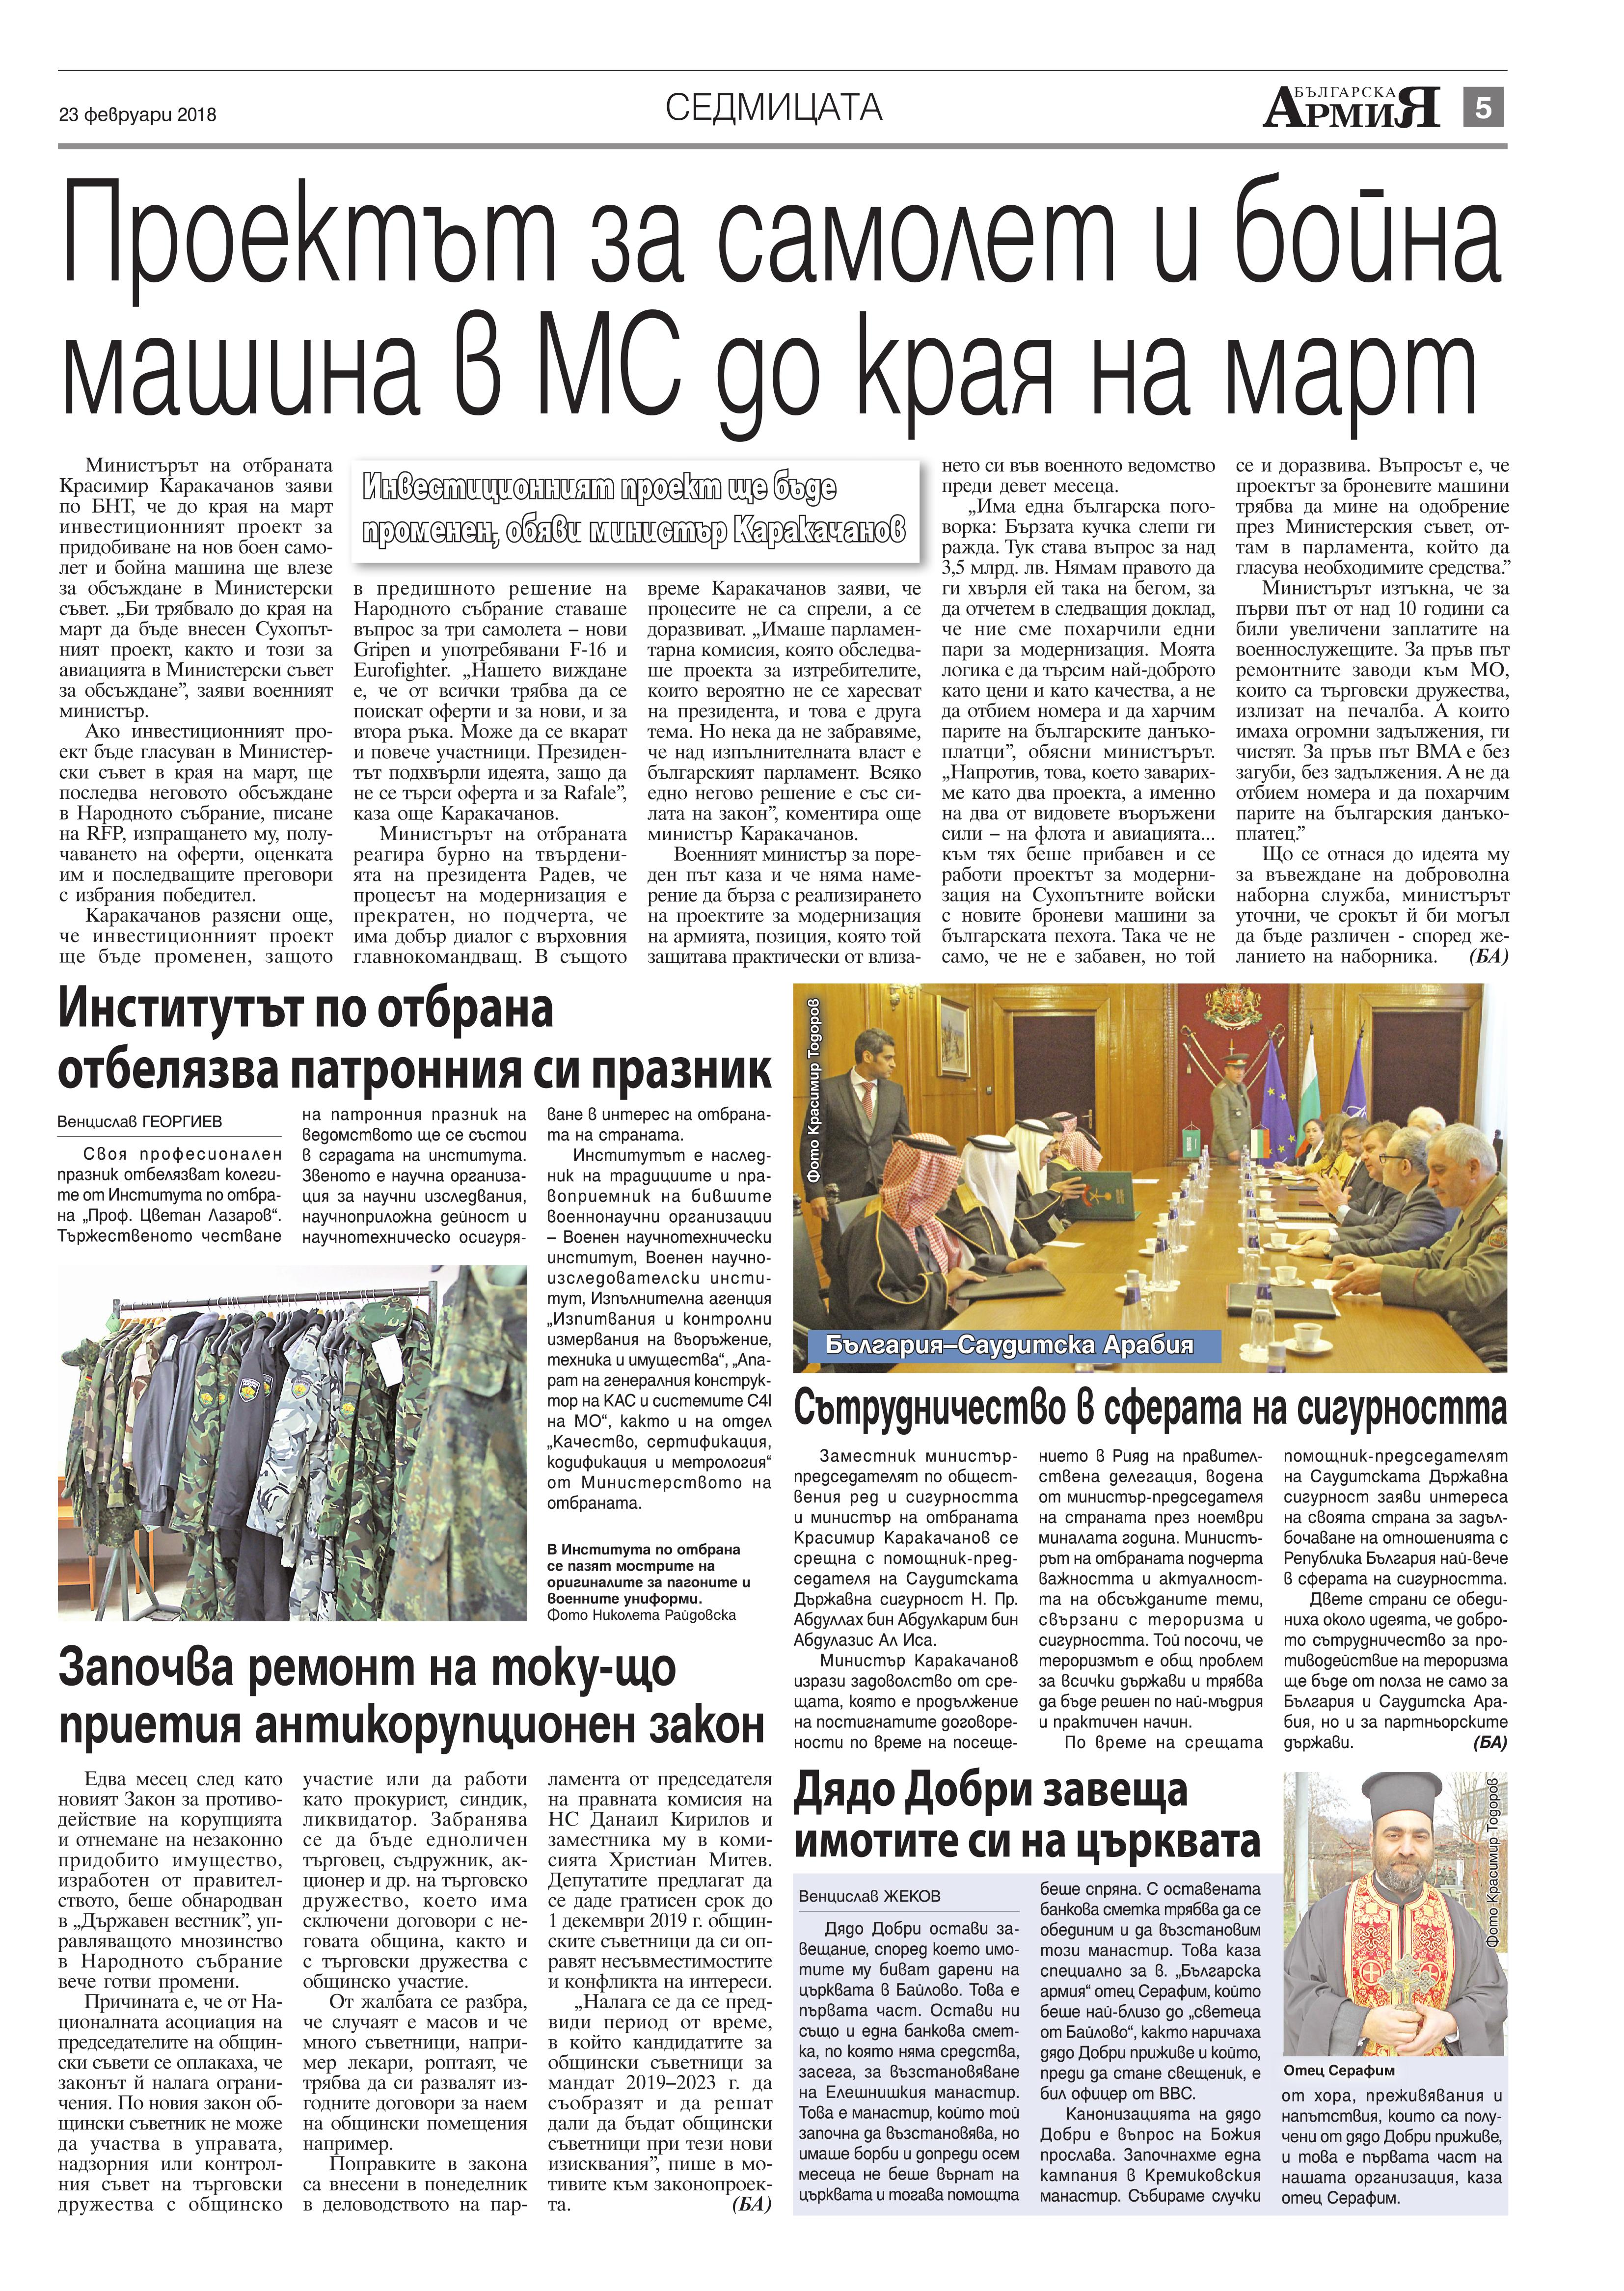 https://armymedia.bg/wp-content/uploads/2015/06/05.page1_-38.jpg